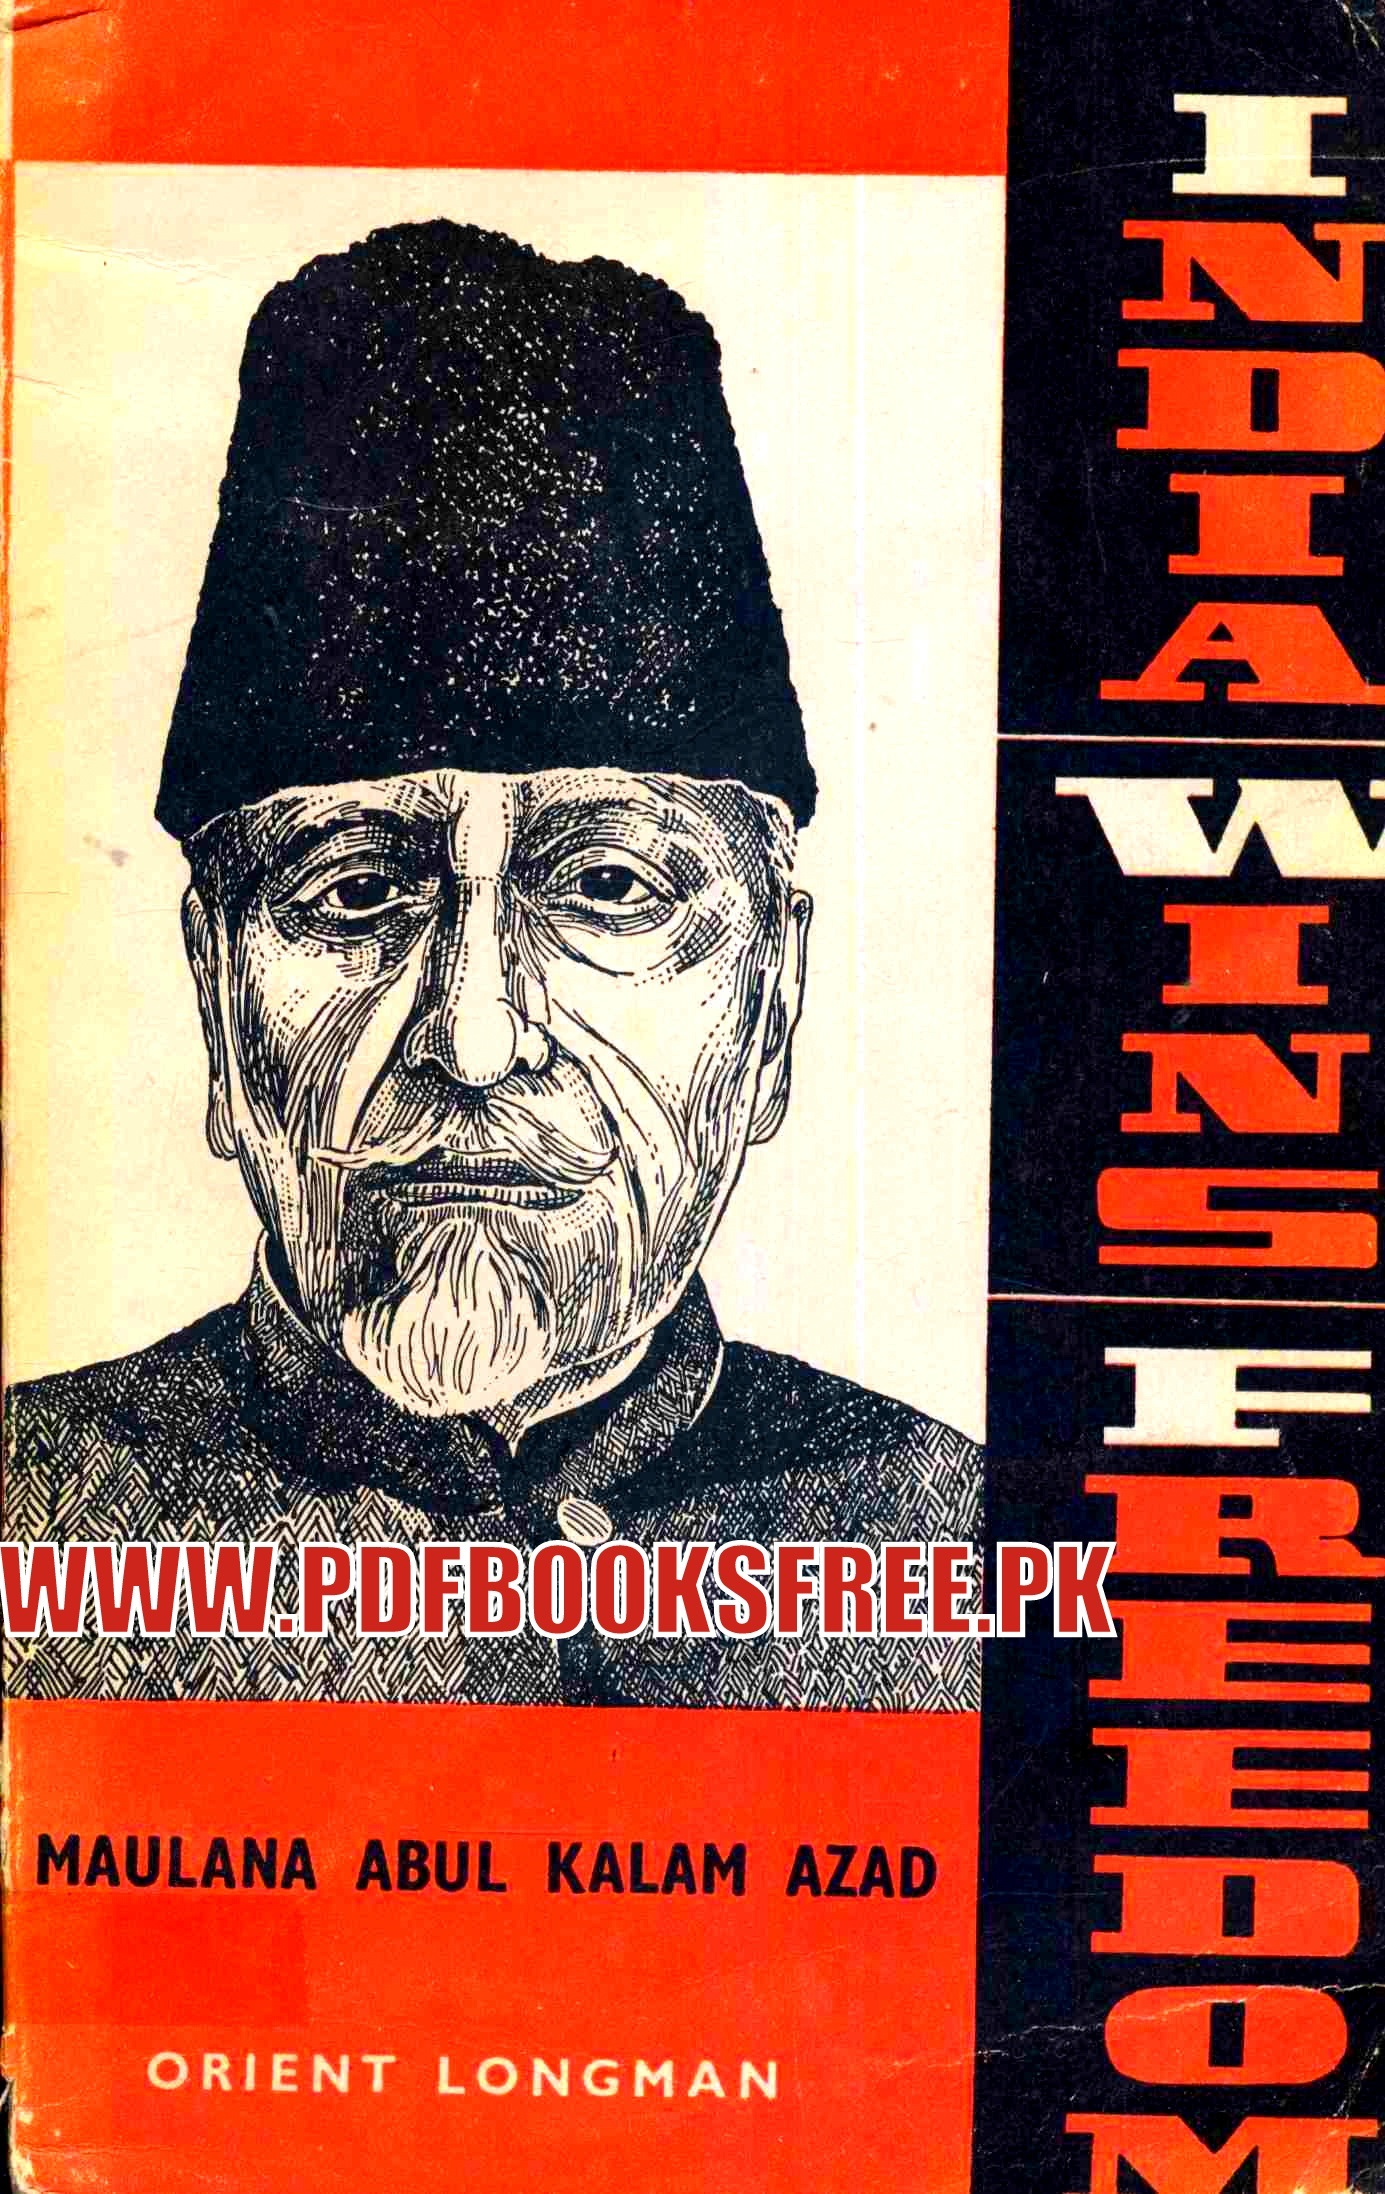 essay on abul kalam azad In essay abul 700 kalam on azad words maulana december 12, 2017 @ 7:29 pm guysborough sketches and essays on friendship research paper done easy.